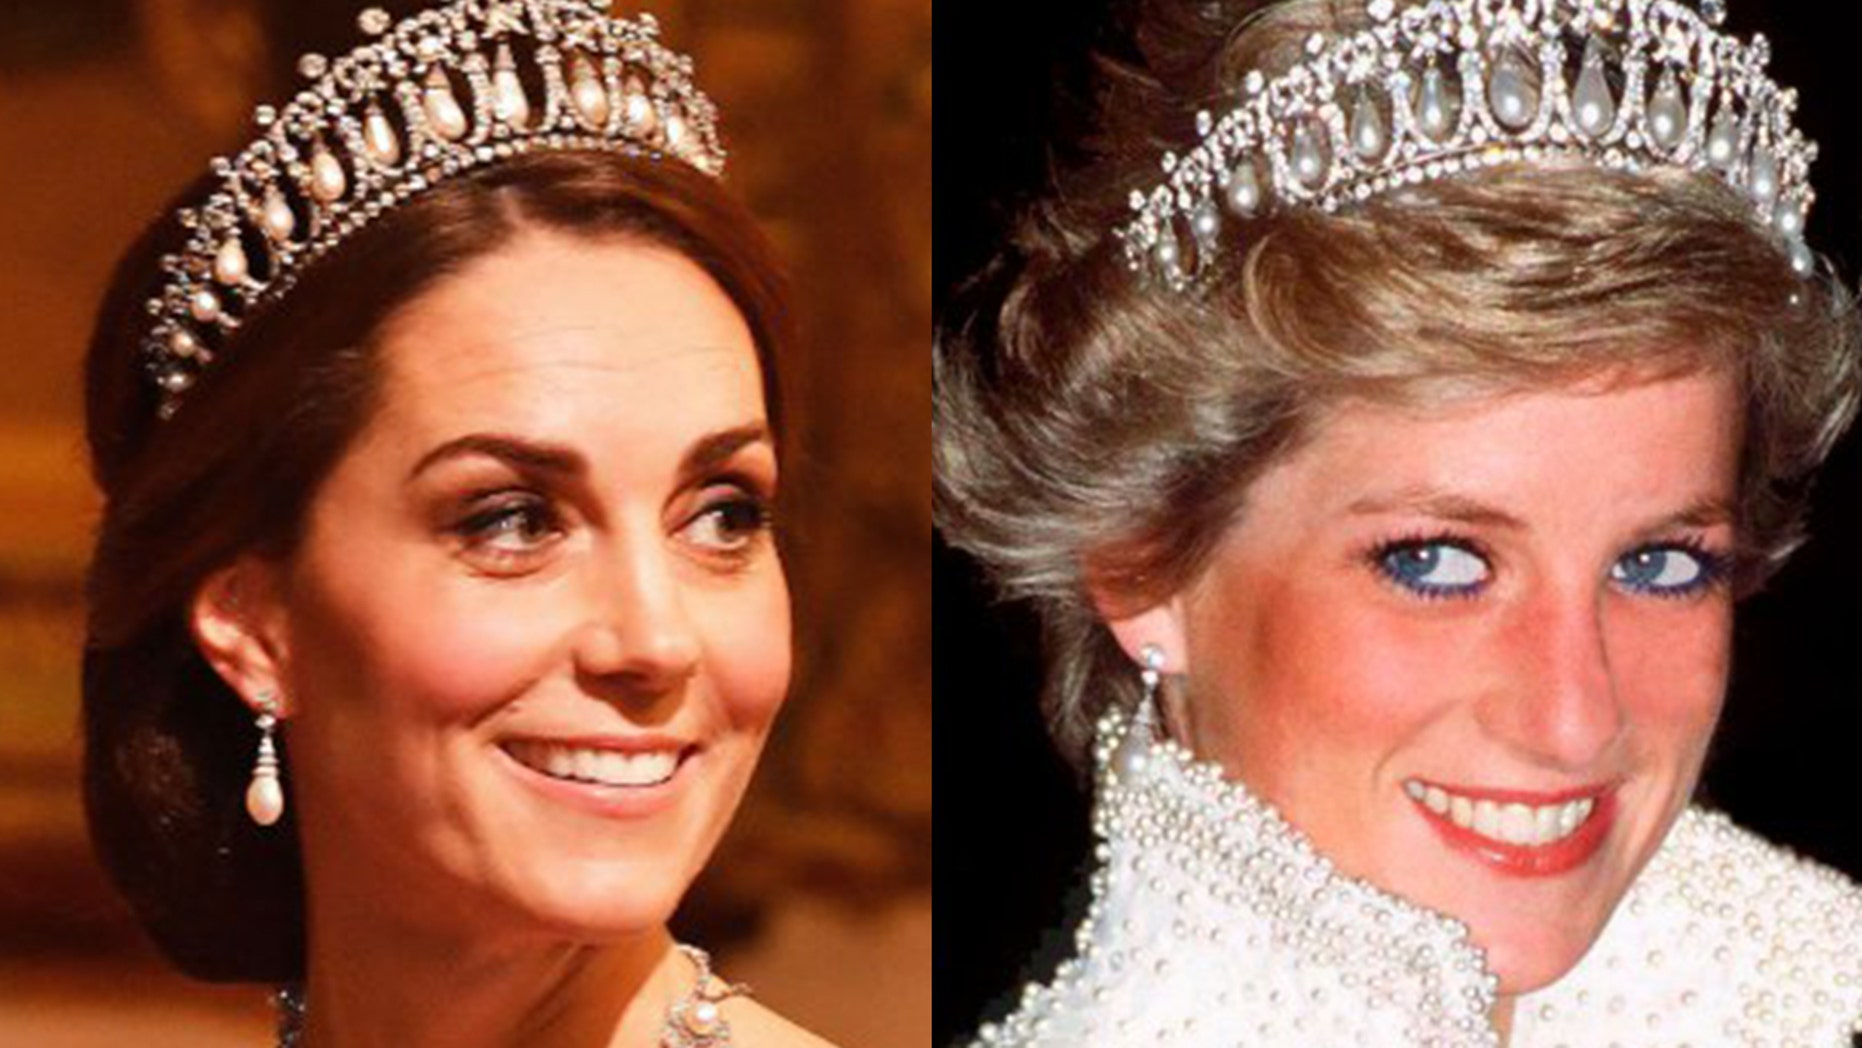 Kate Middleton takes the famous tiara from lovers of Princess Diana at a banquet at Buckingham Palace on Tuesday night.